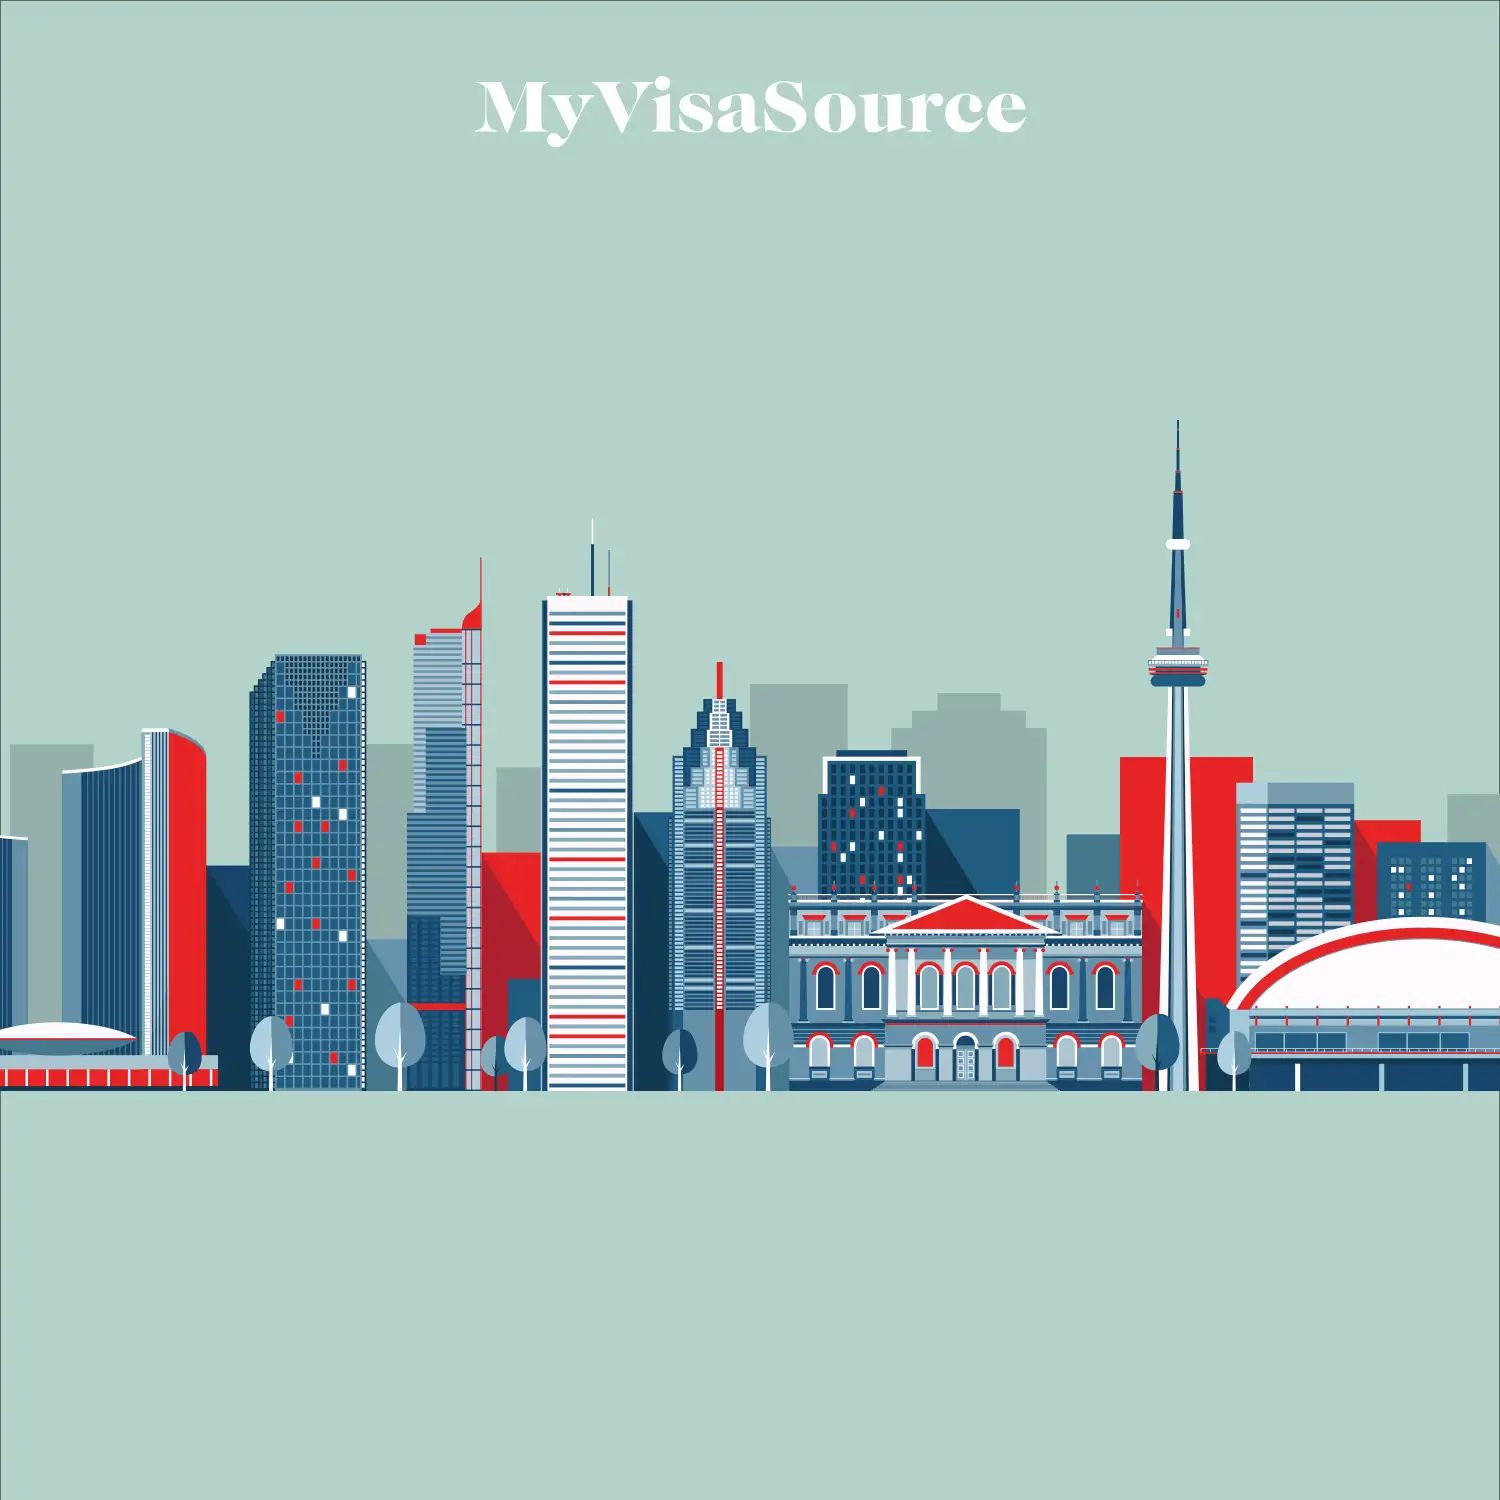 toronto-skyline-in-a-boxy-drawing-with-monochrome-blues-and-reds-on-turquoise-background-by-my-visa-source